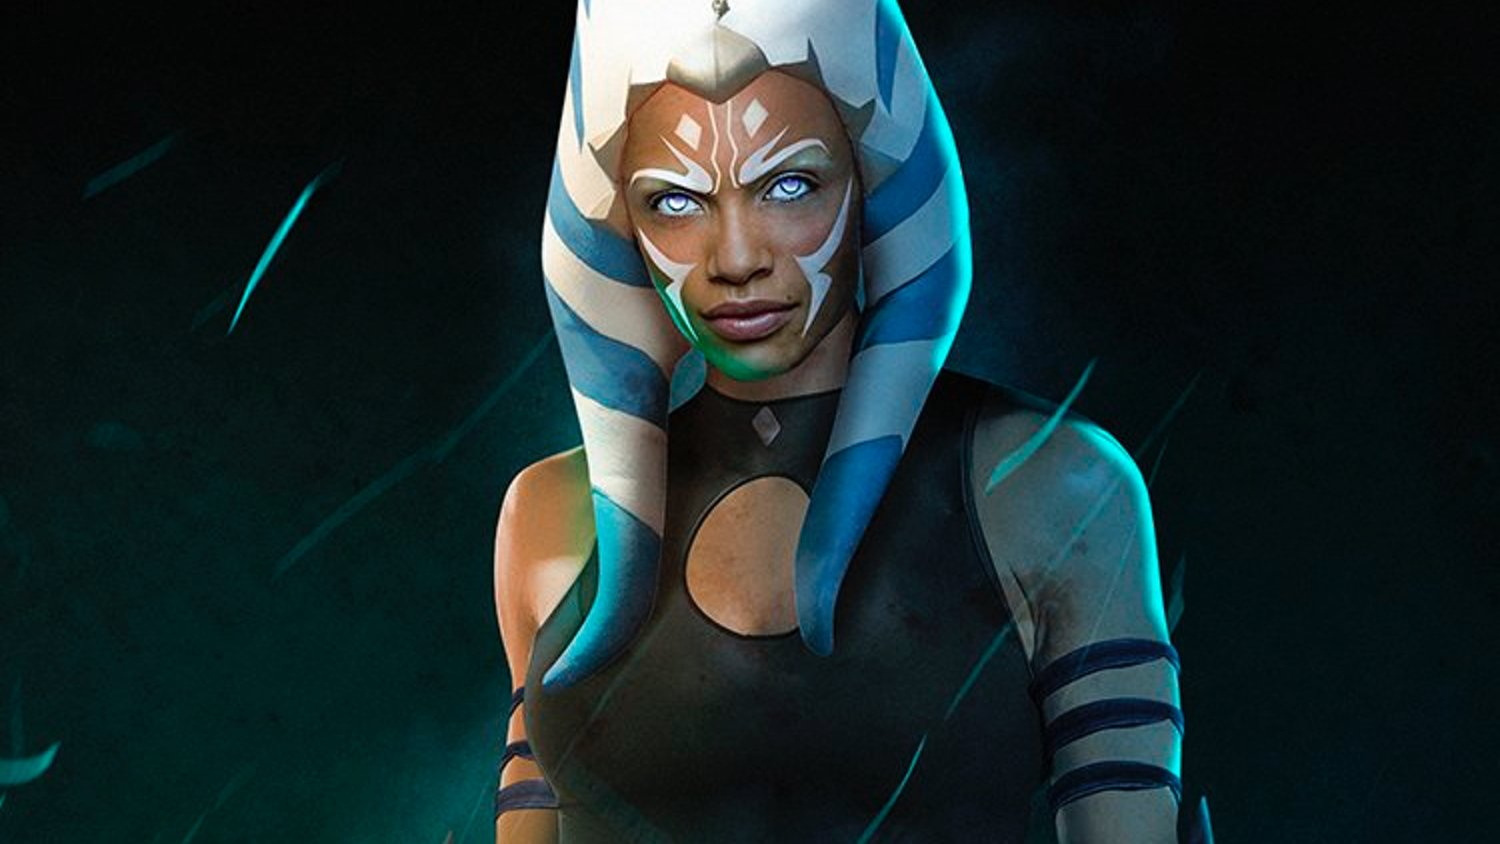 Fan Art Features Rosario Dawson as STAR WARS Character Ahsoka Tano